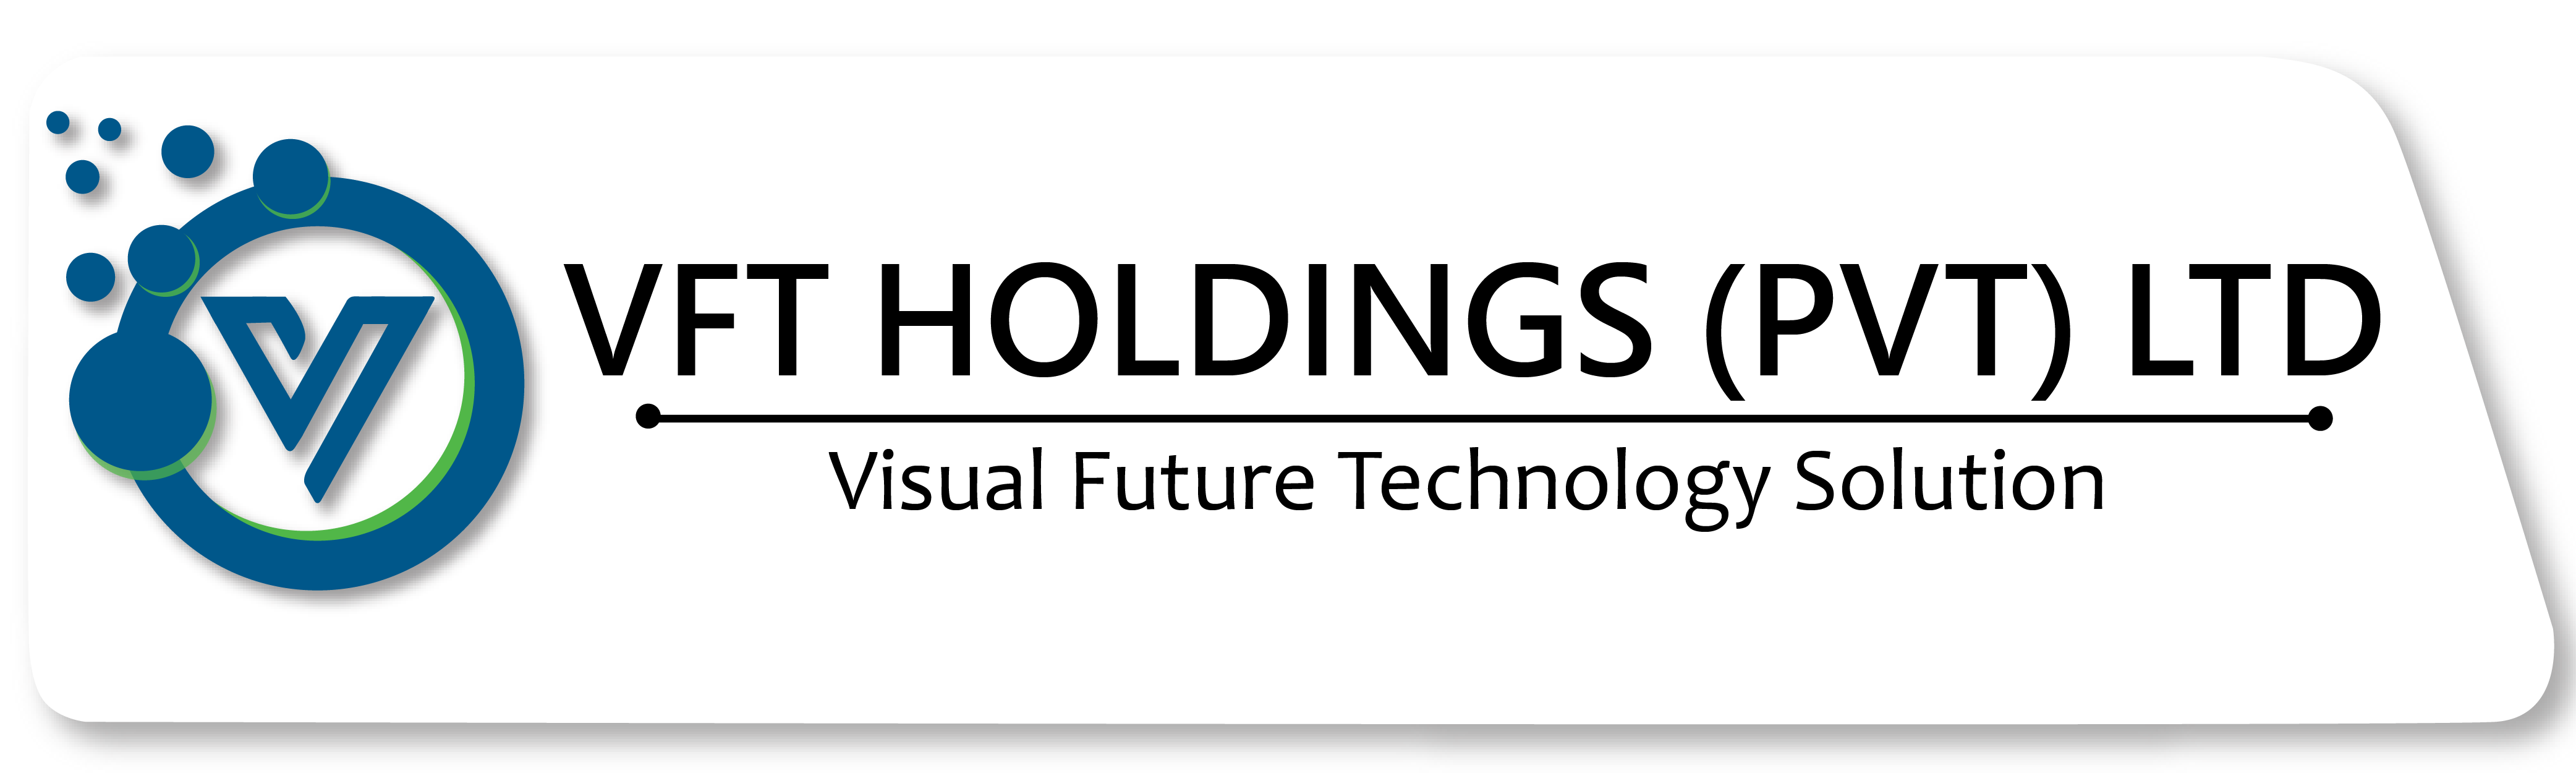 VFT HOLDINGS (PVT) LTD